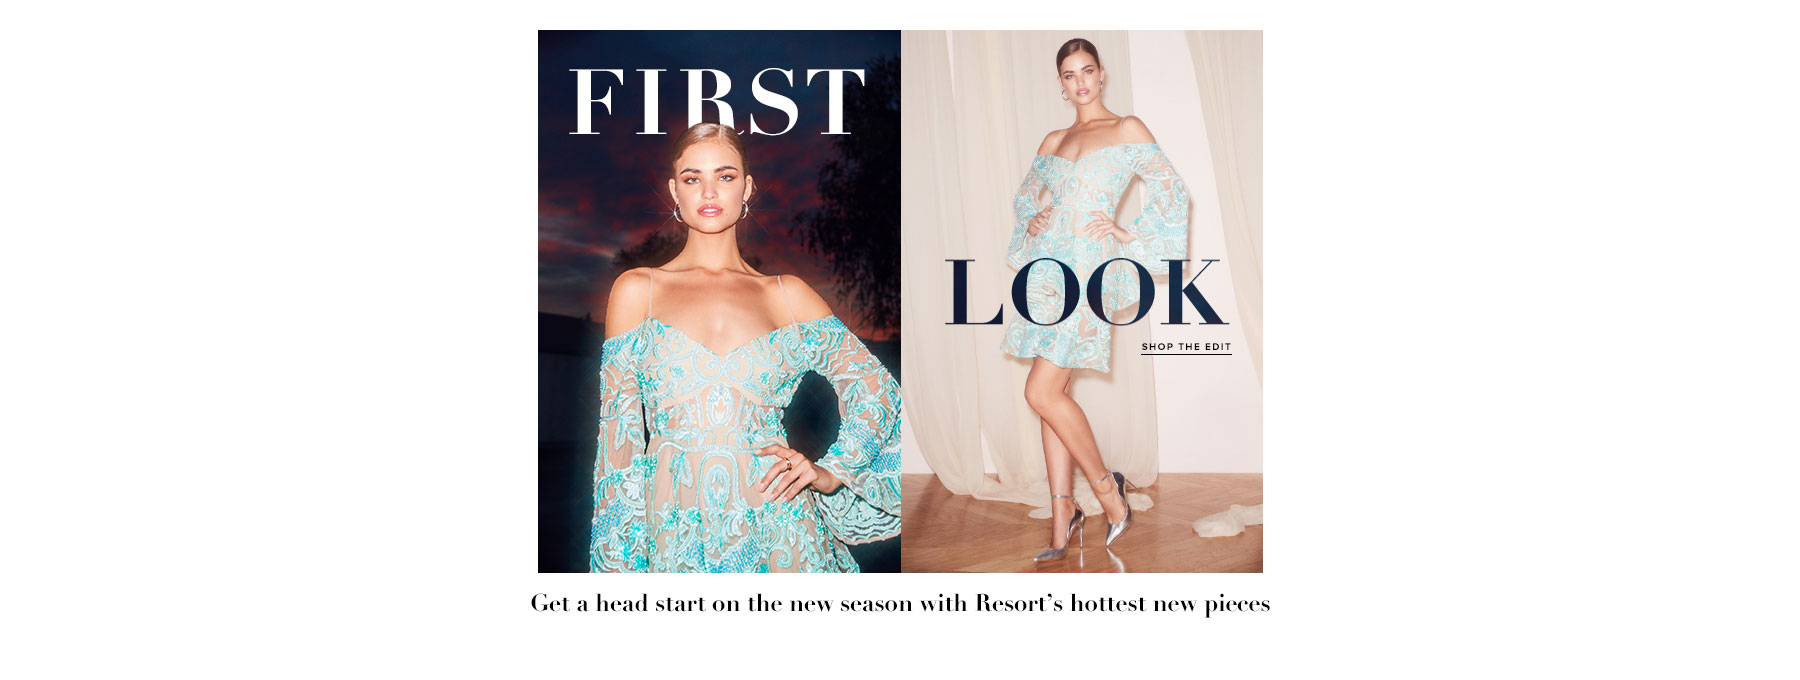 First Look: RESORT! Get a head start on the new season with resorts hottest new pieces. Shop the edit